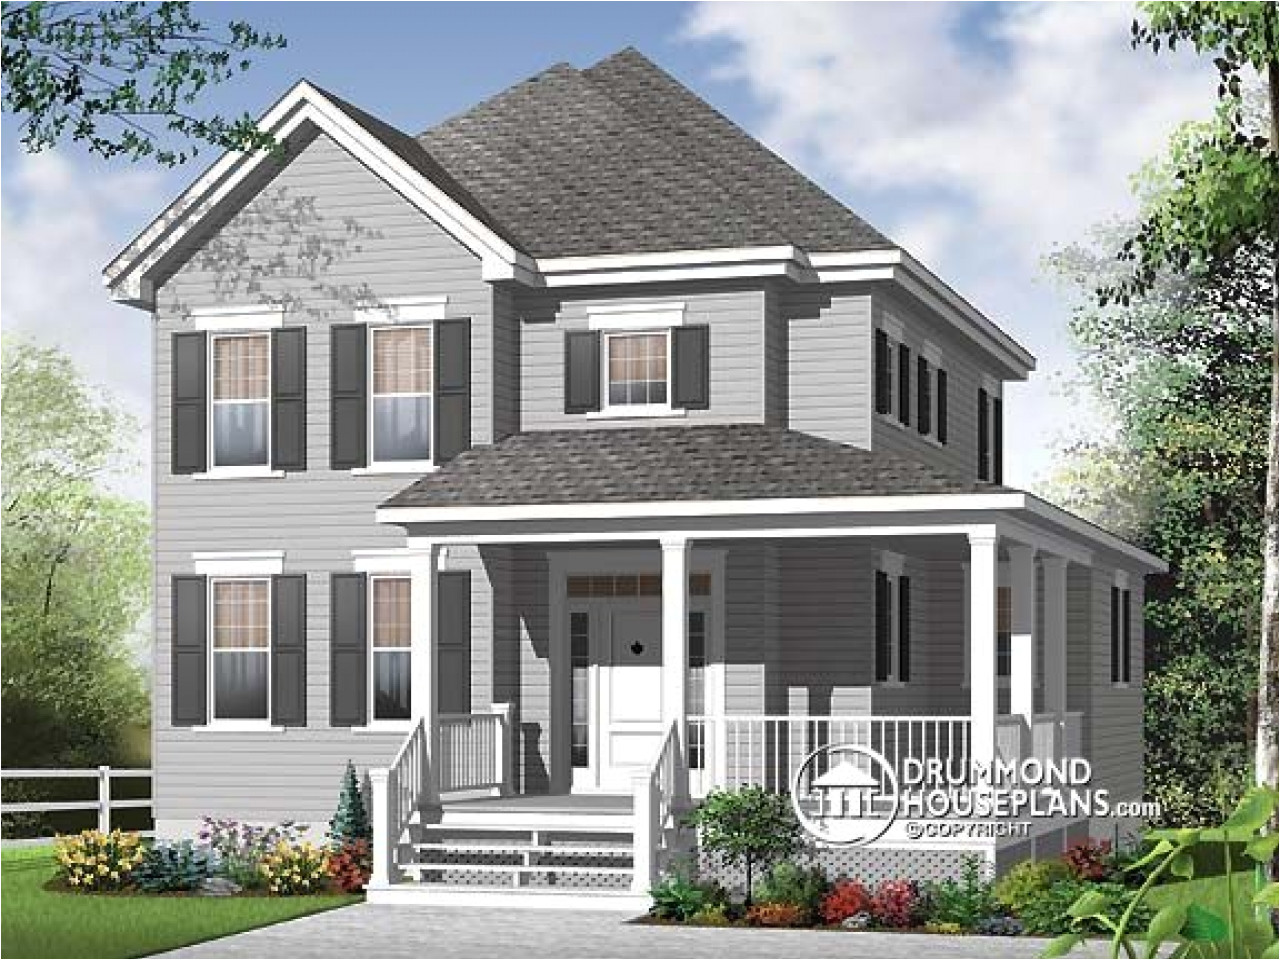 036c31b14df570e9 old fashioned house plans with porches old southern farmhouse plans